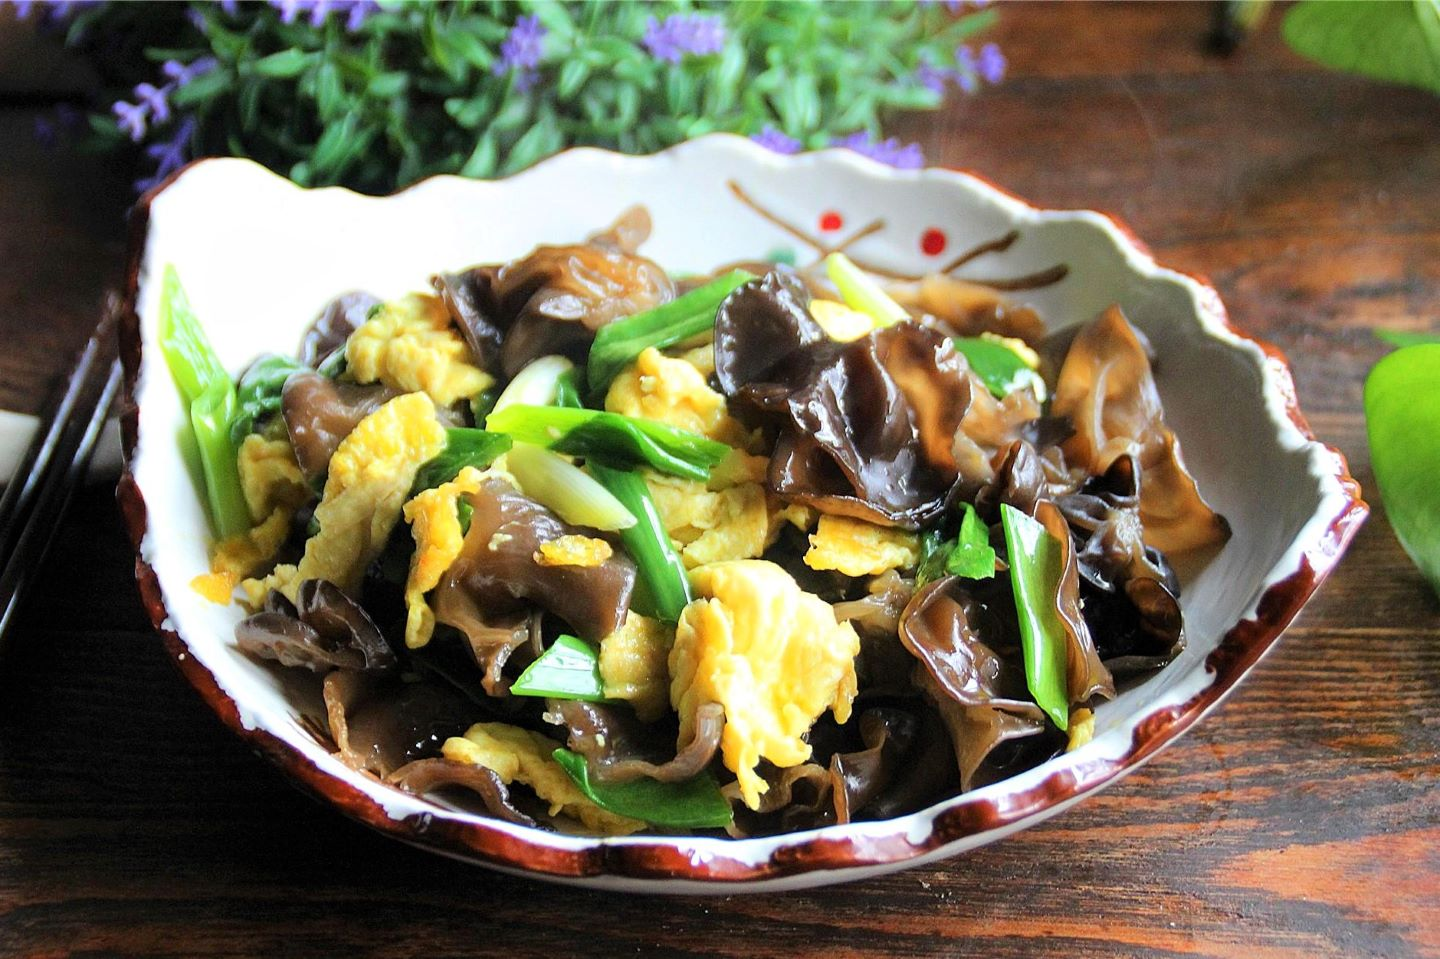 Scrambled Eggs with Black Fungus and green onion recipe for black fungus